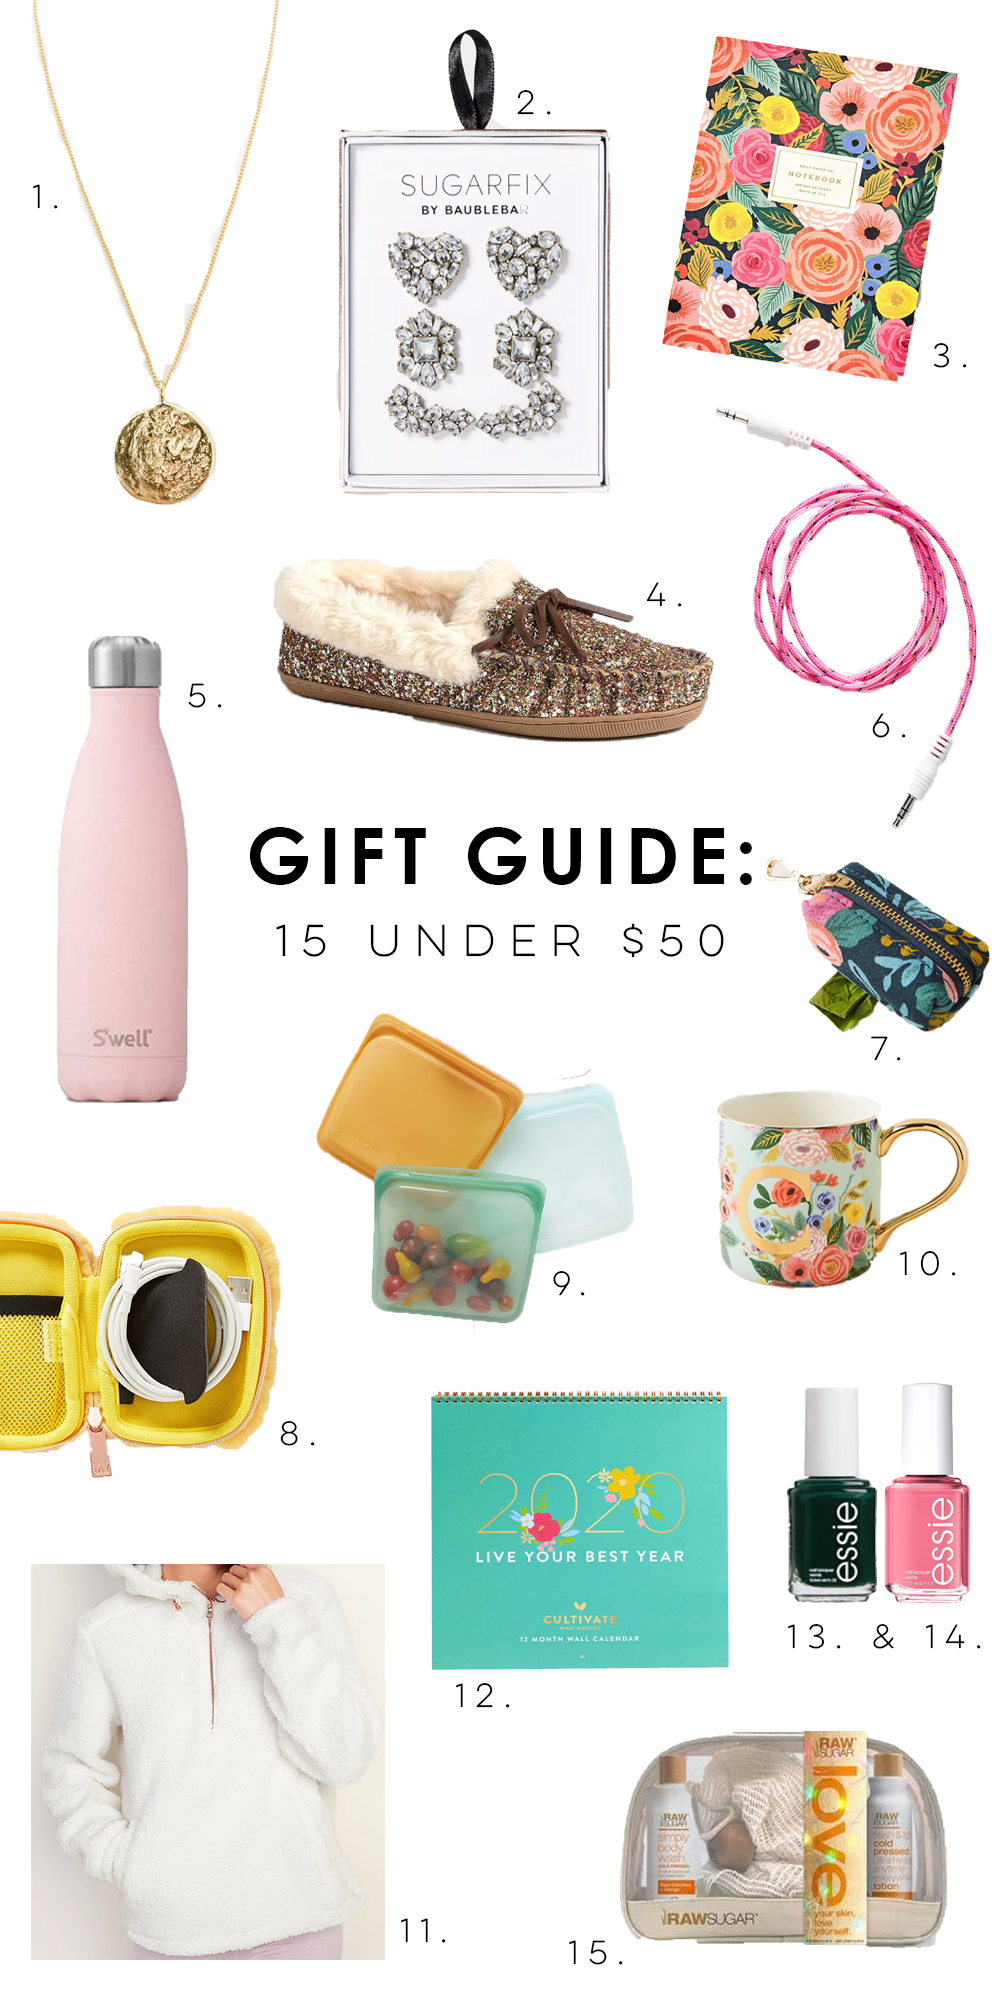 Girly Gift Guide for Her: 15 Under $50 / The Ultimate Gift Guide For Your BFF / Christmas Gift Ideas - Sunshine Style